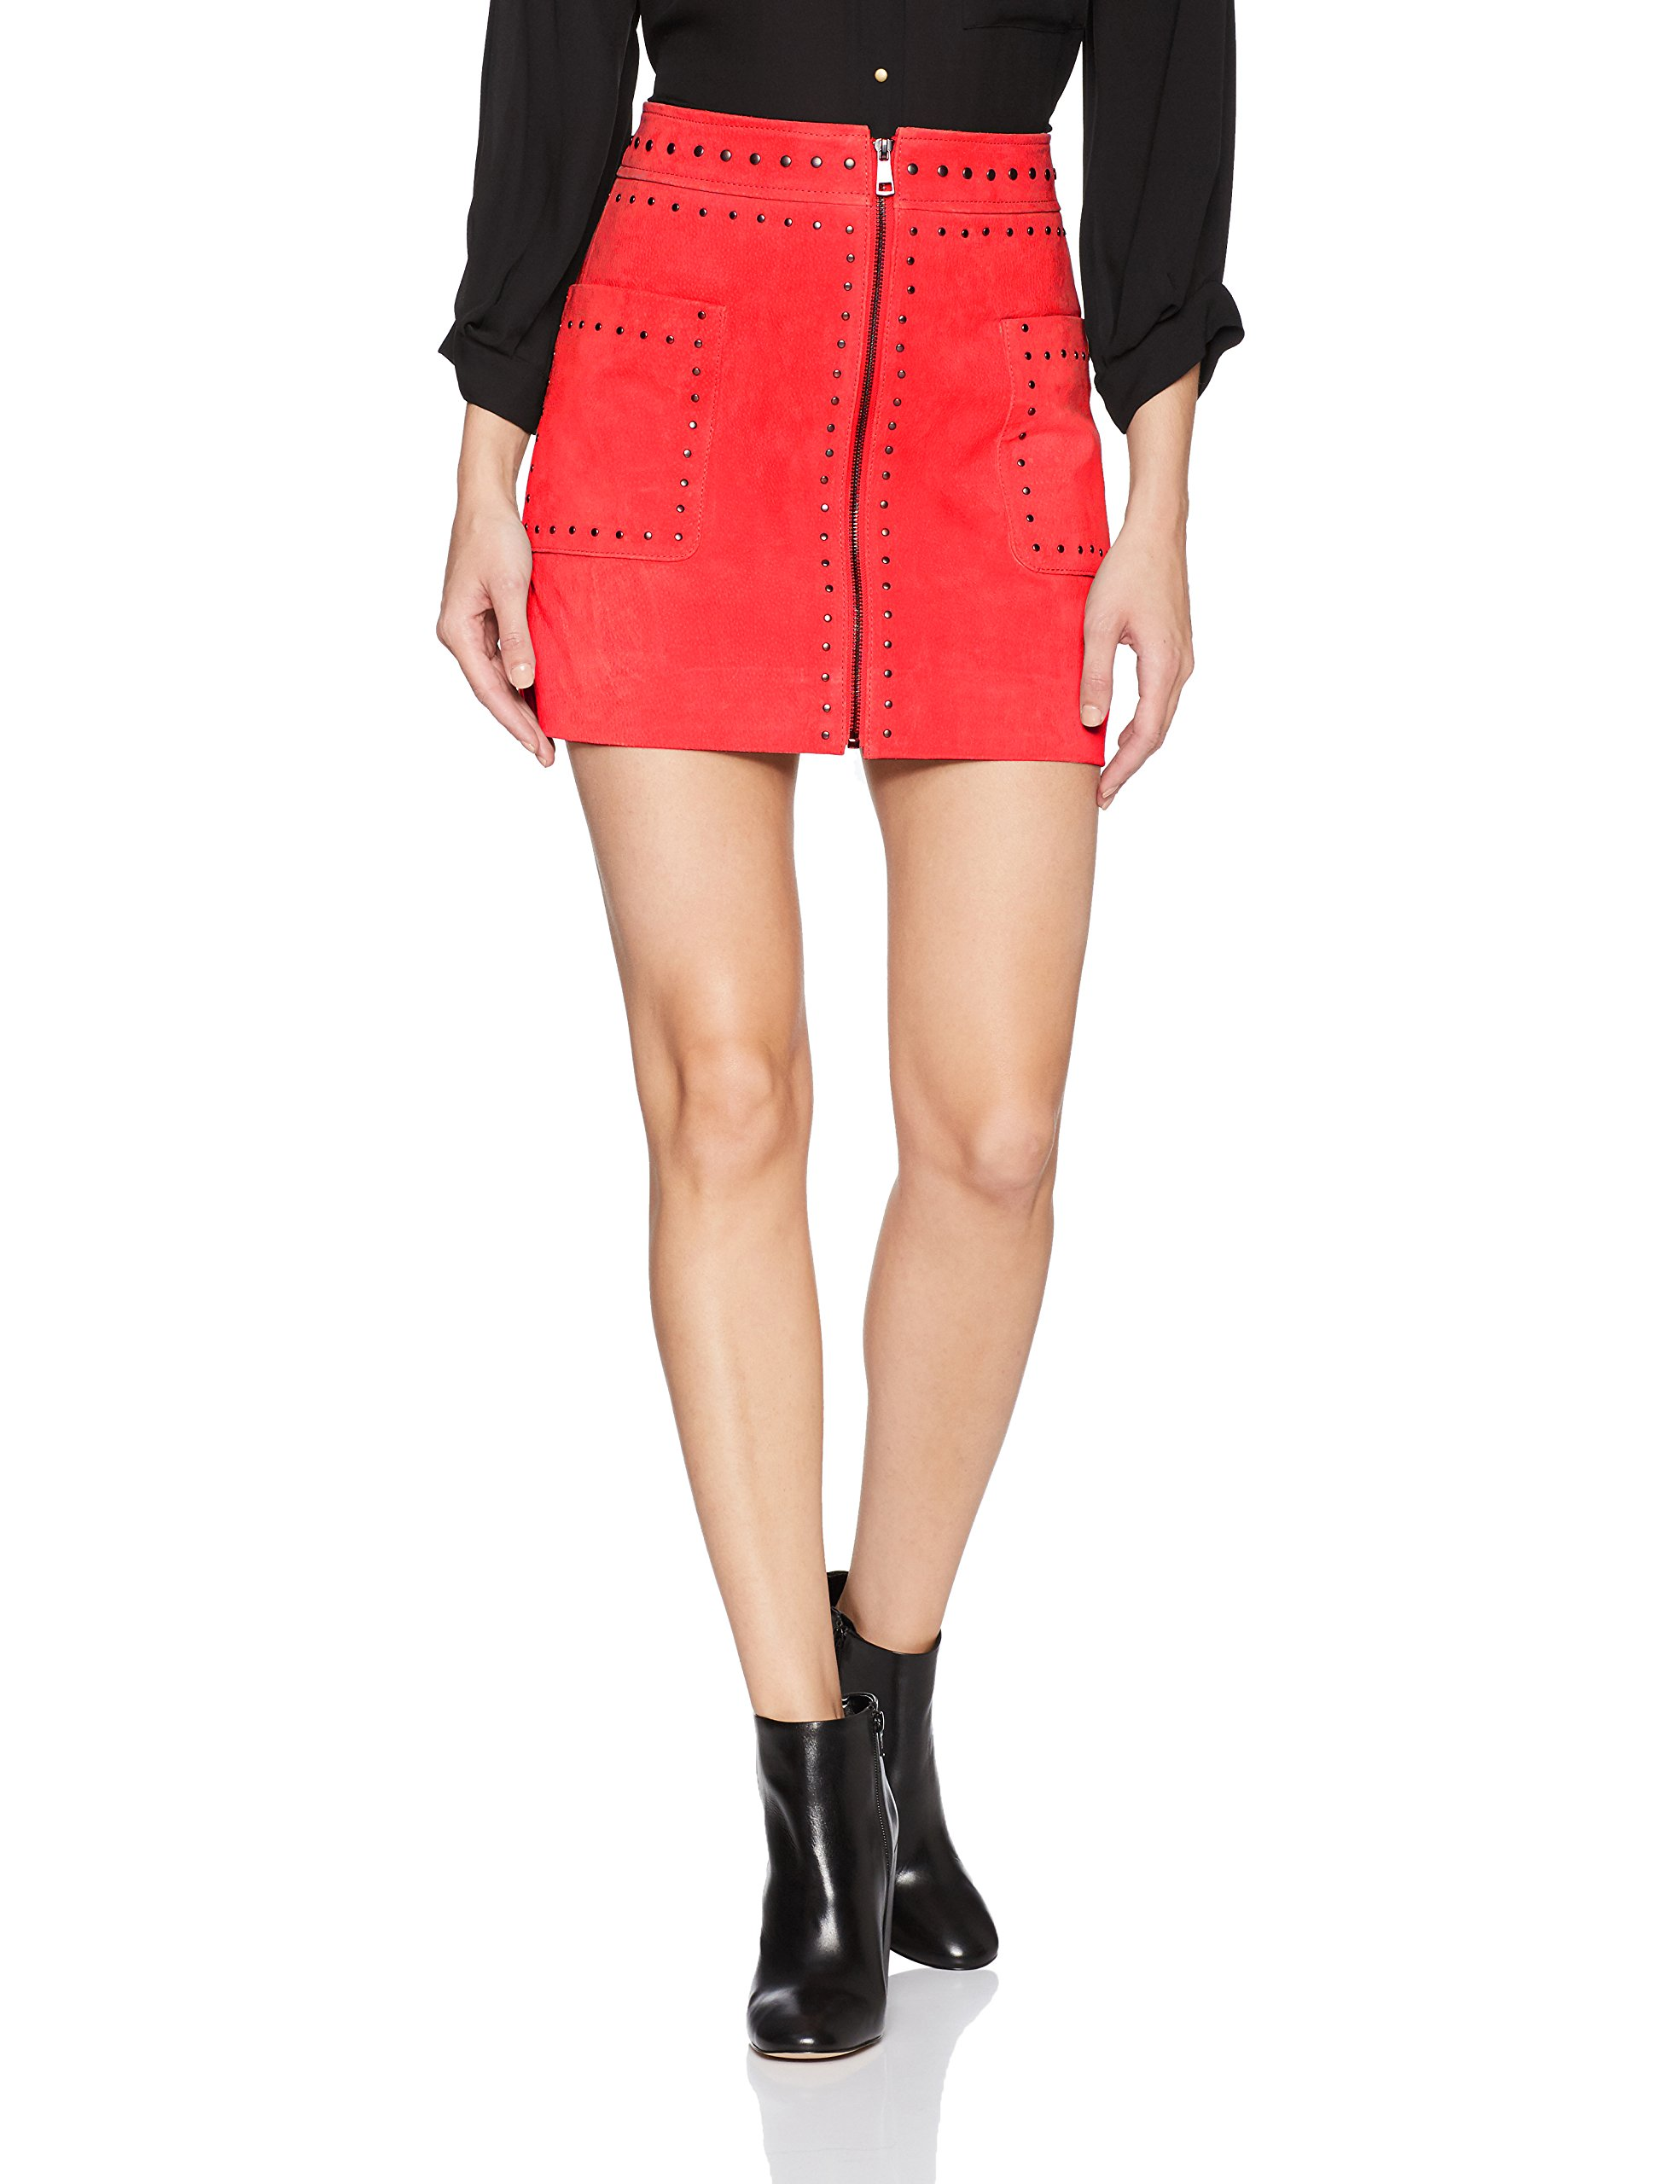 Bagatelle.NYC Women's Suede Studded Skirt, Crimson, M